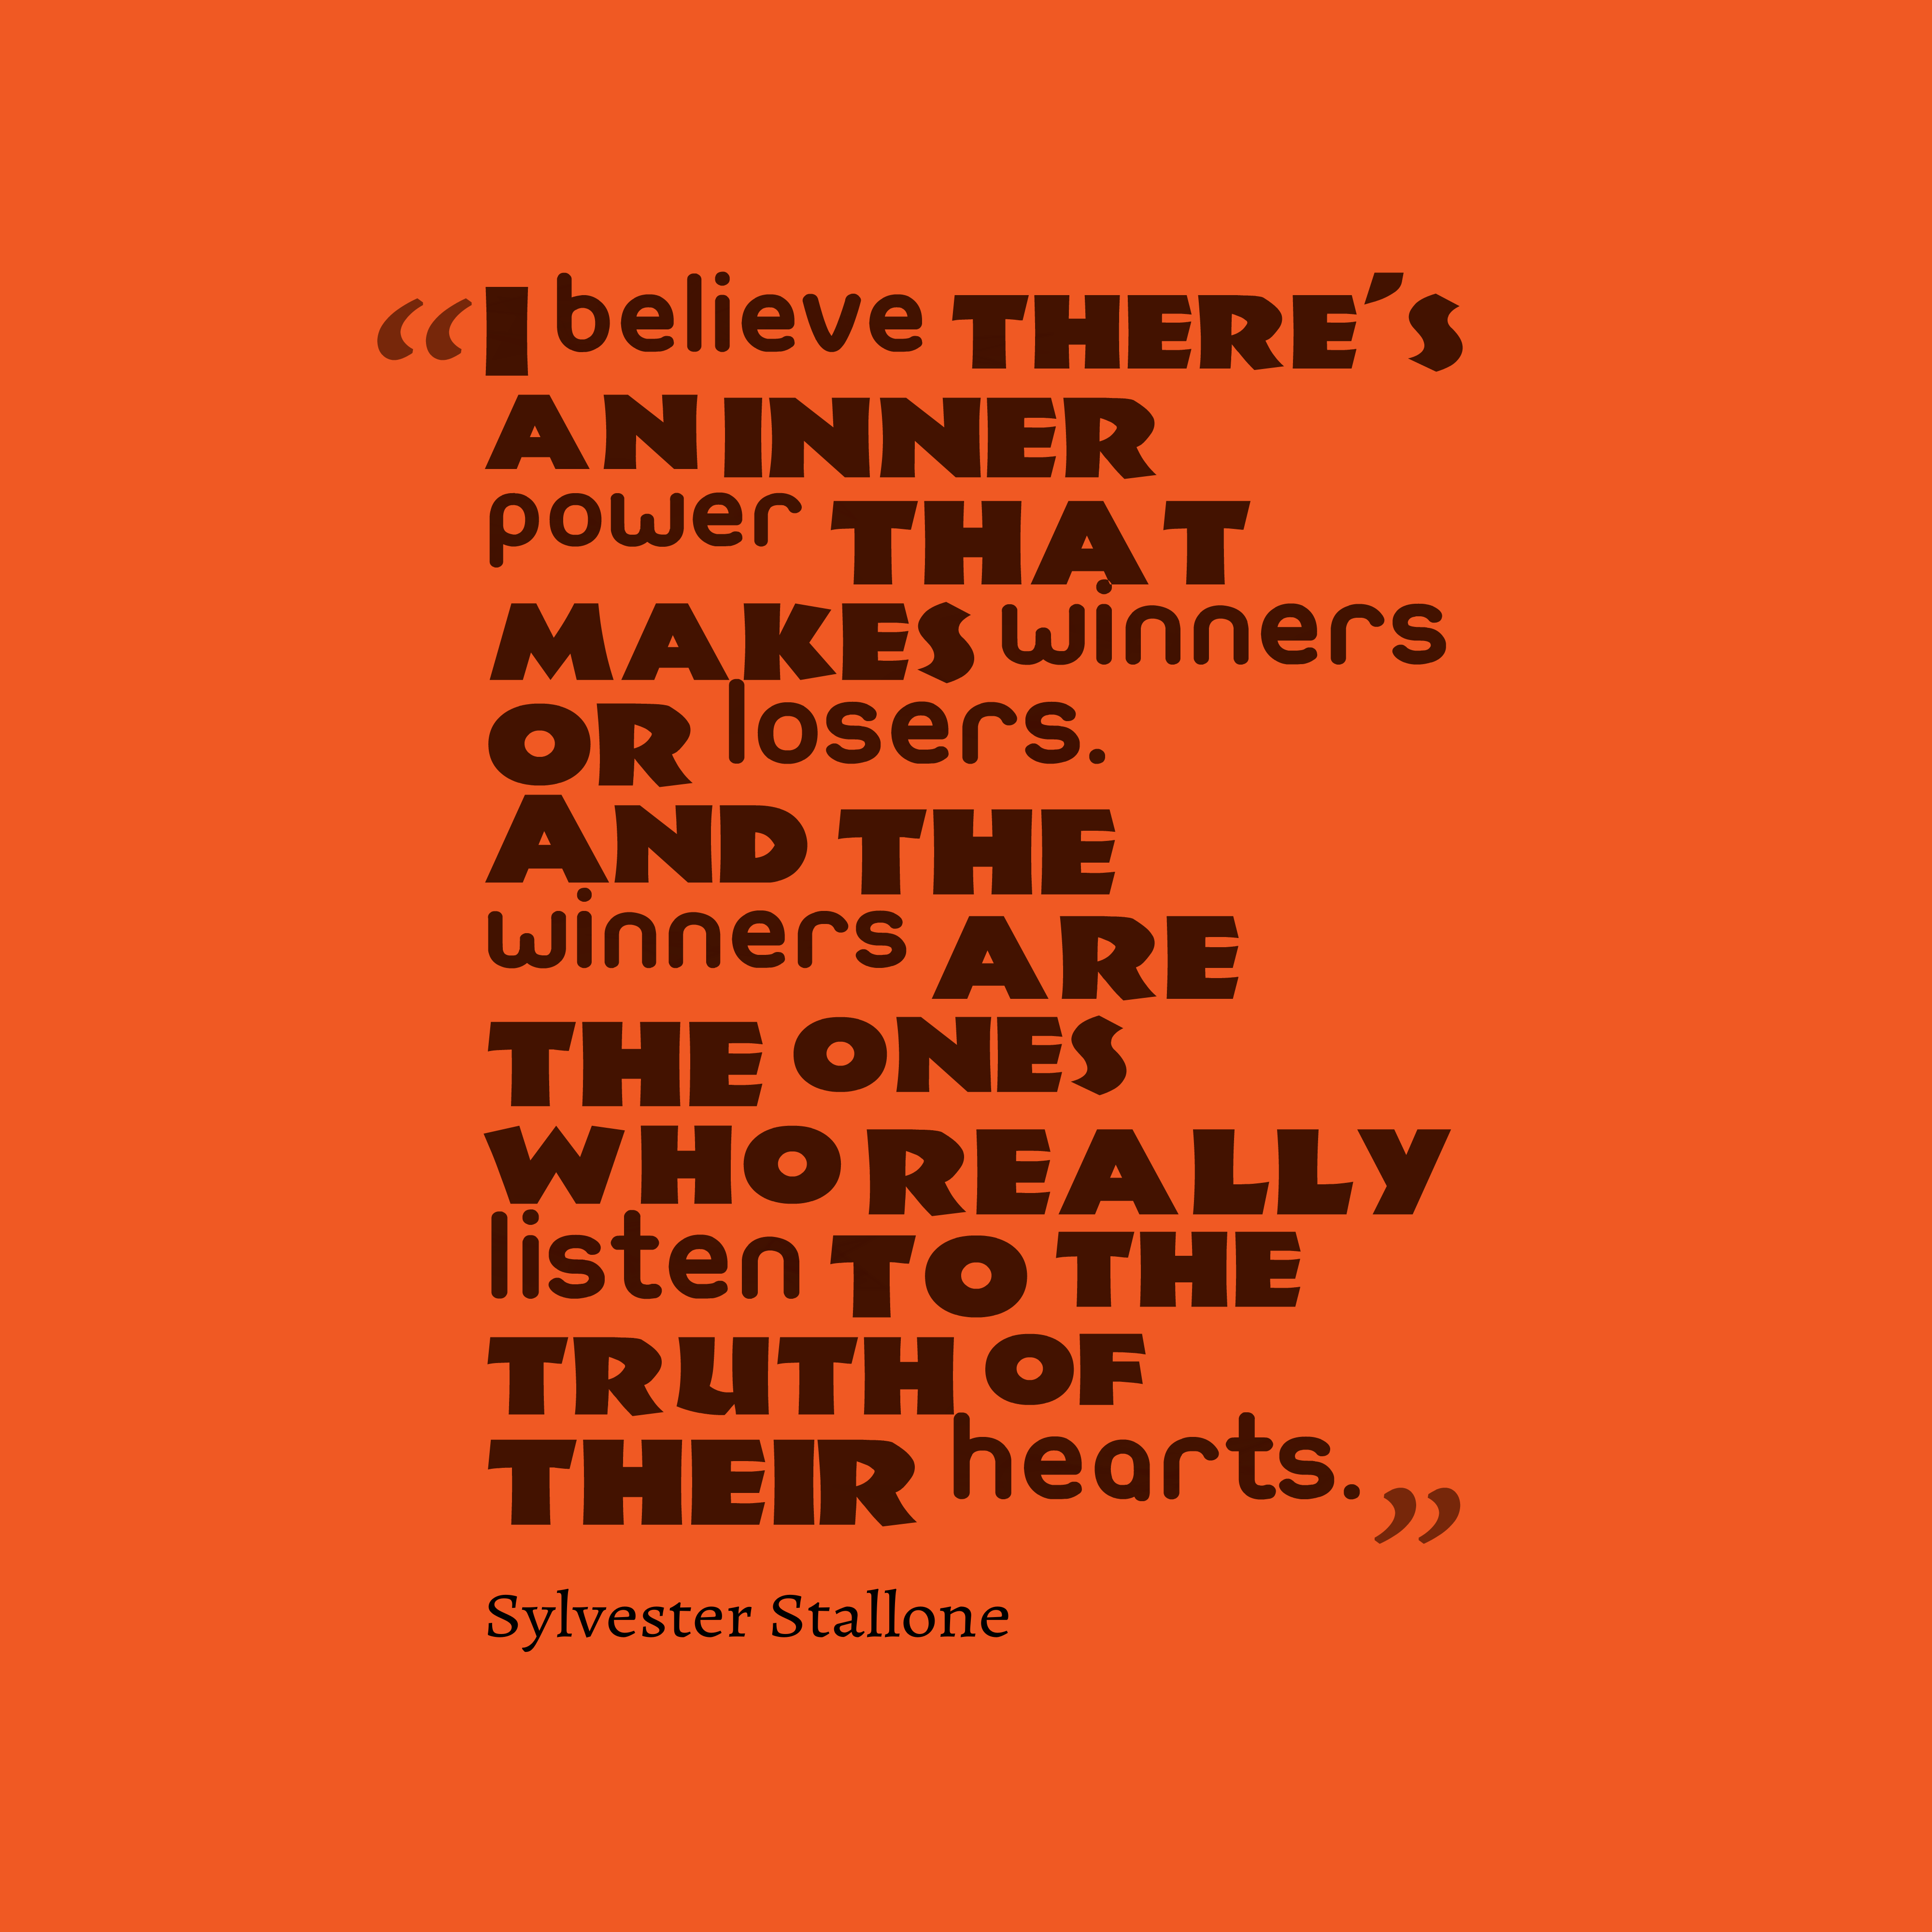 Quotes image of I believe there's an inner power that makes winners or losers. And the winners are the ones who really listen to the truth of their hearts.